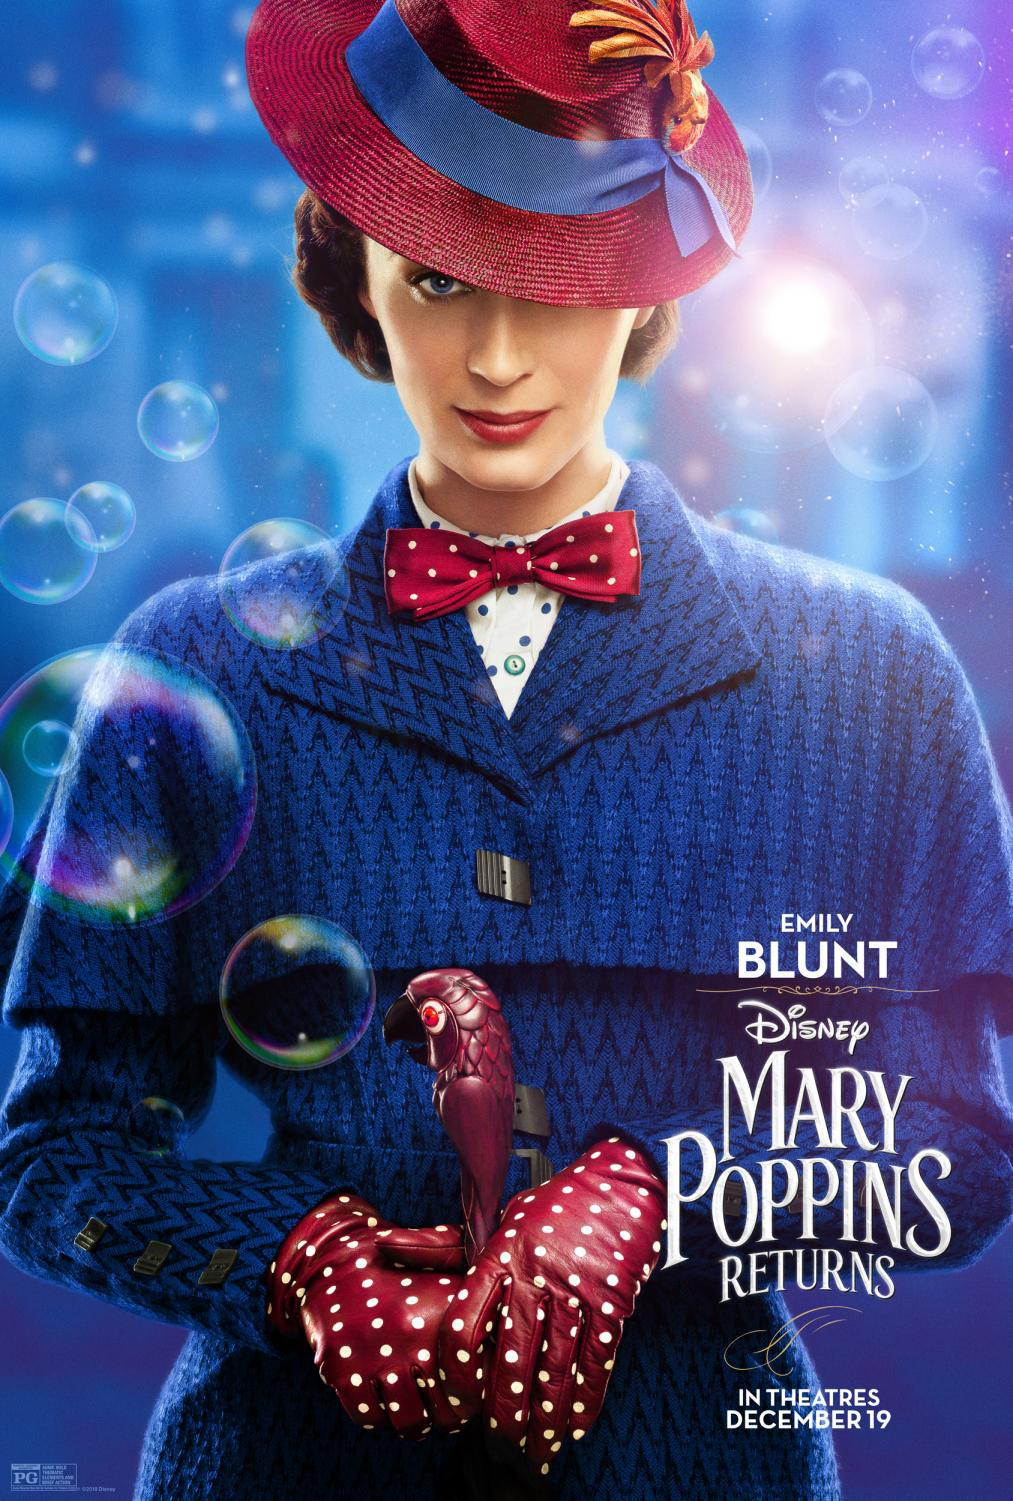 Mary Poppins Returns poster (bing.com).